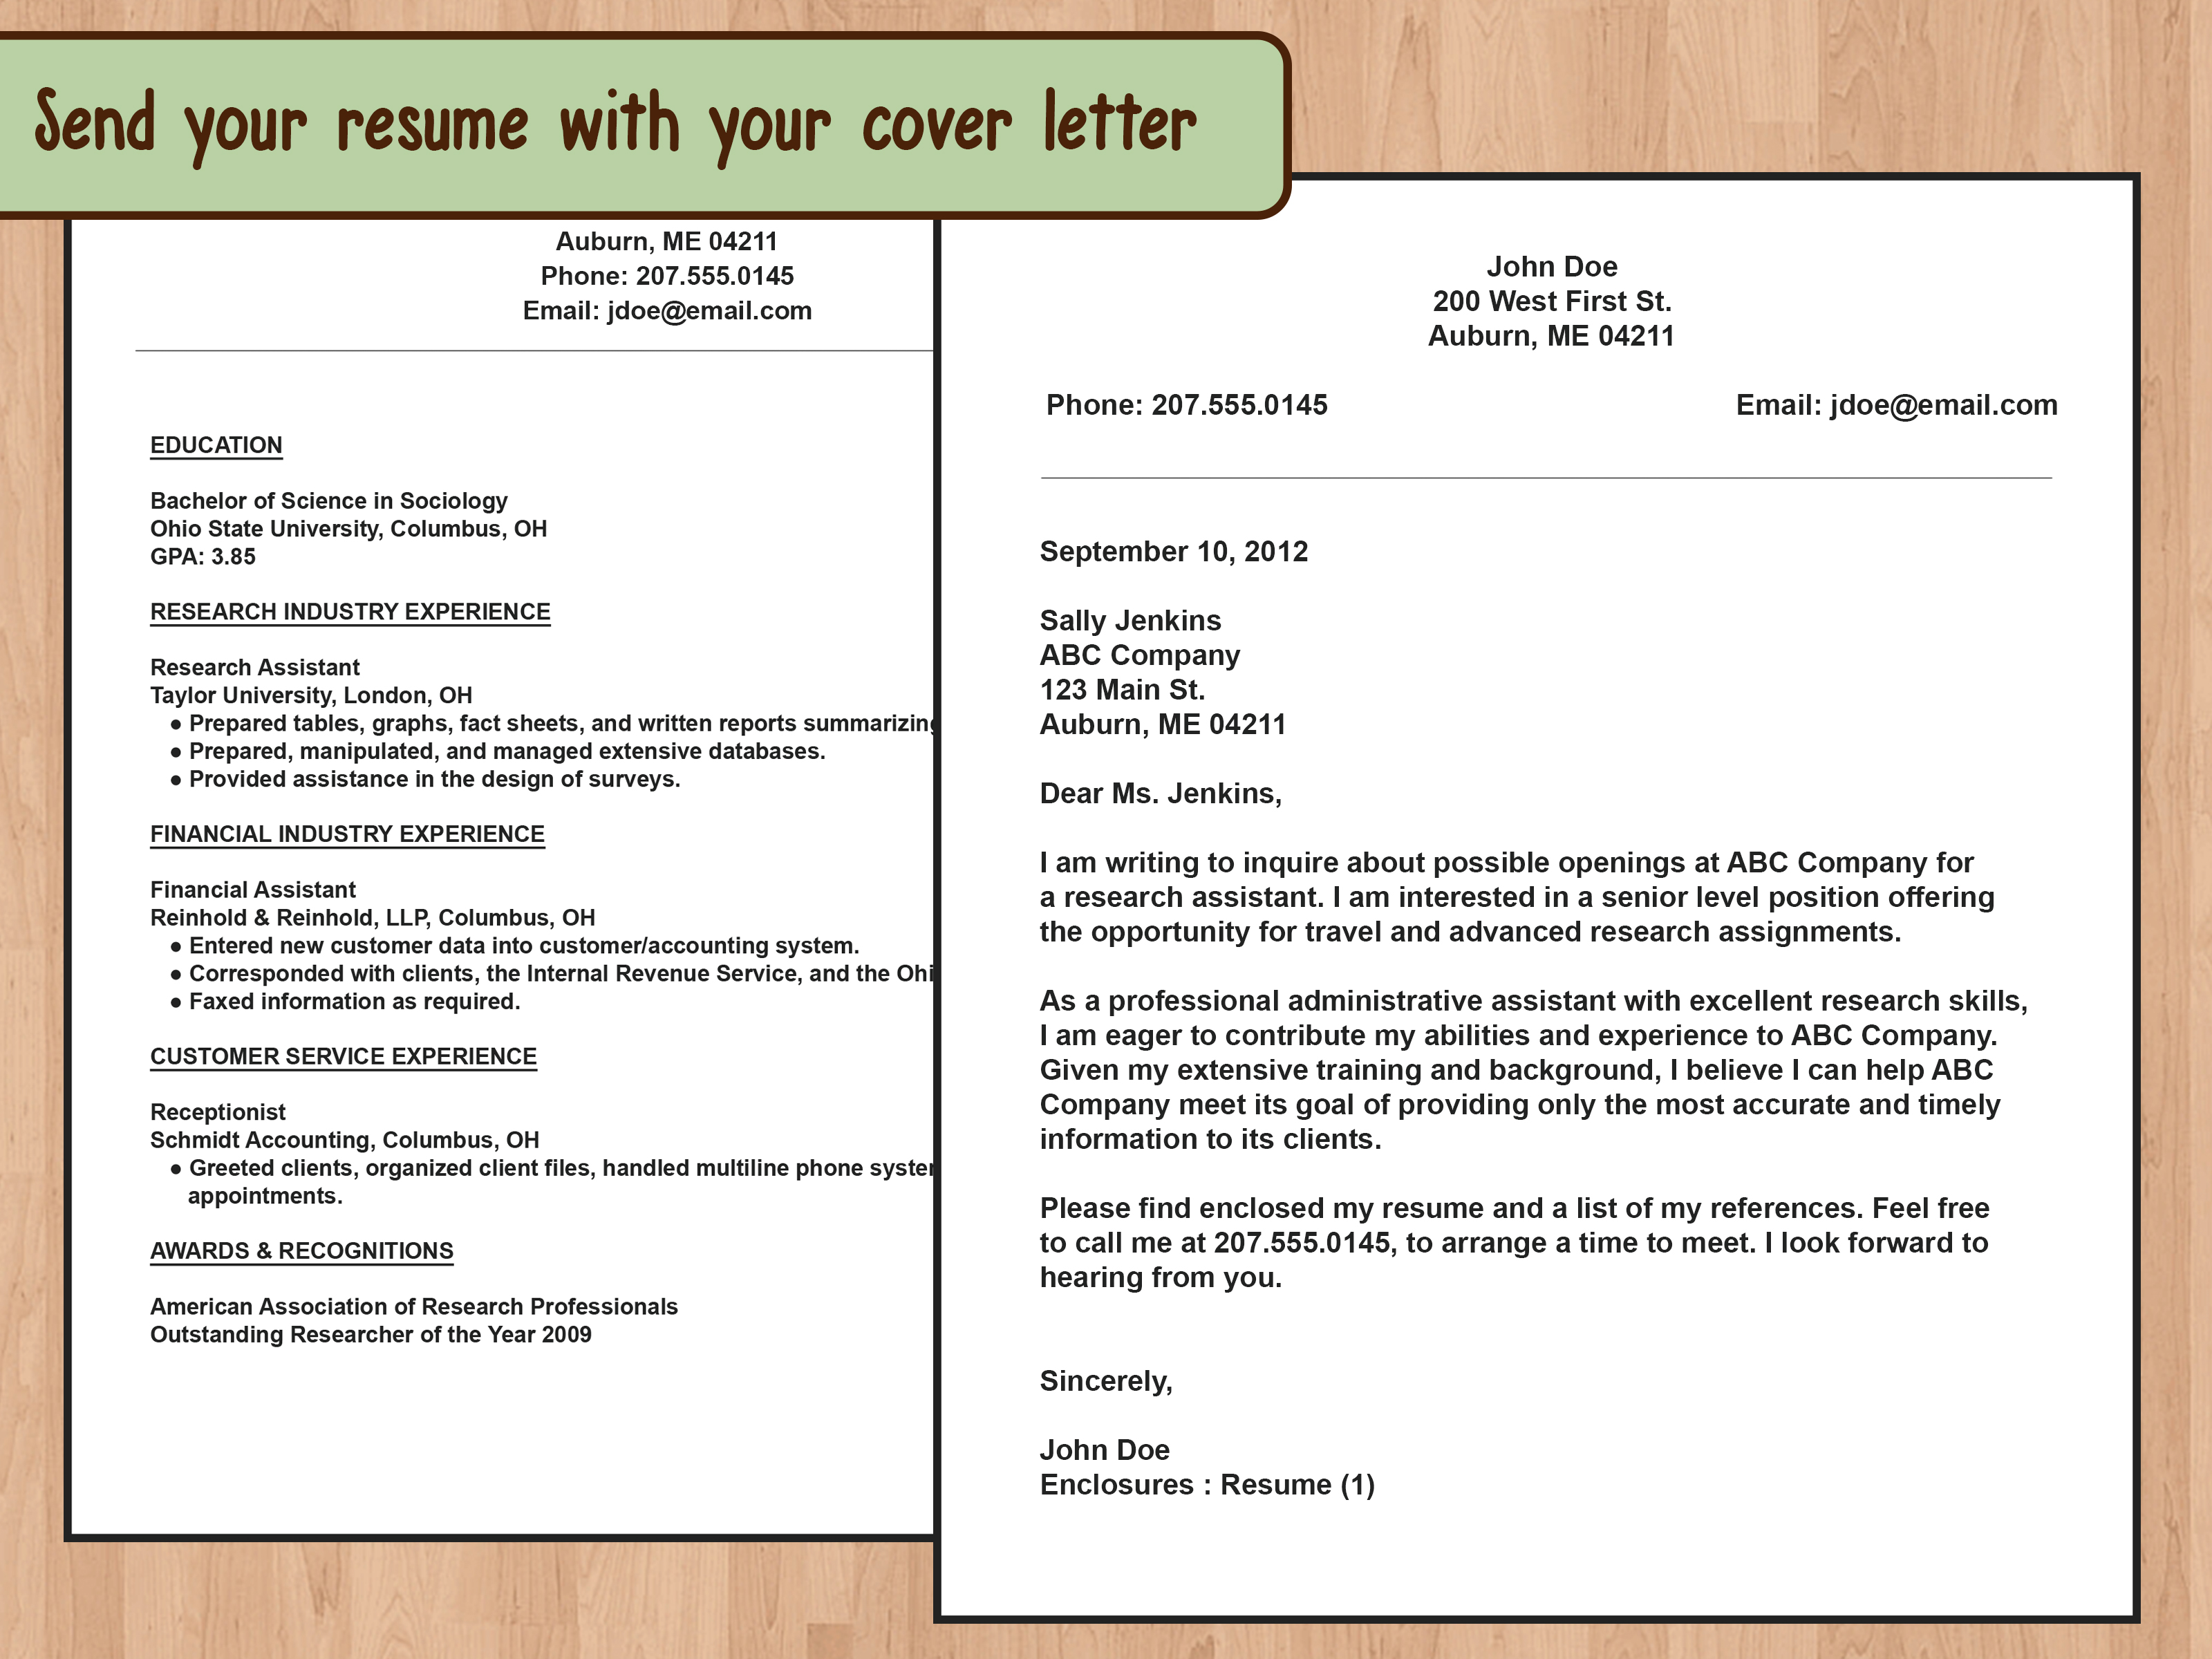 Writing Cover Letters How To Write A Cover Letter For A Recruitment Consultant With